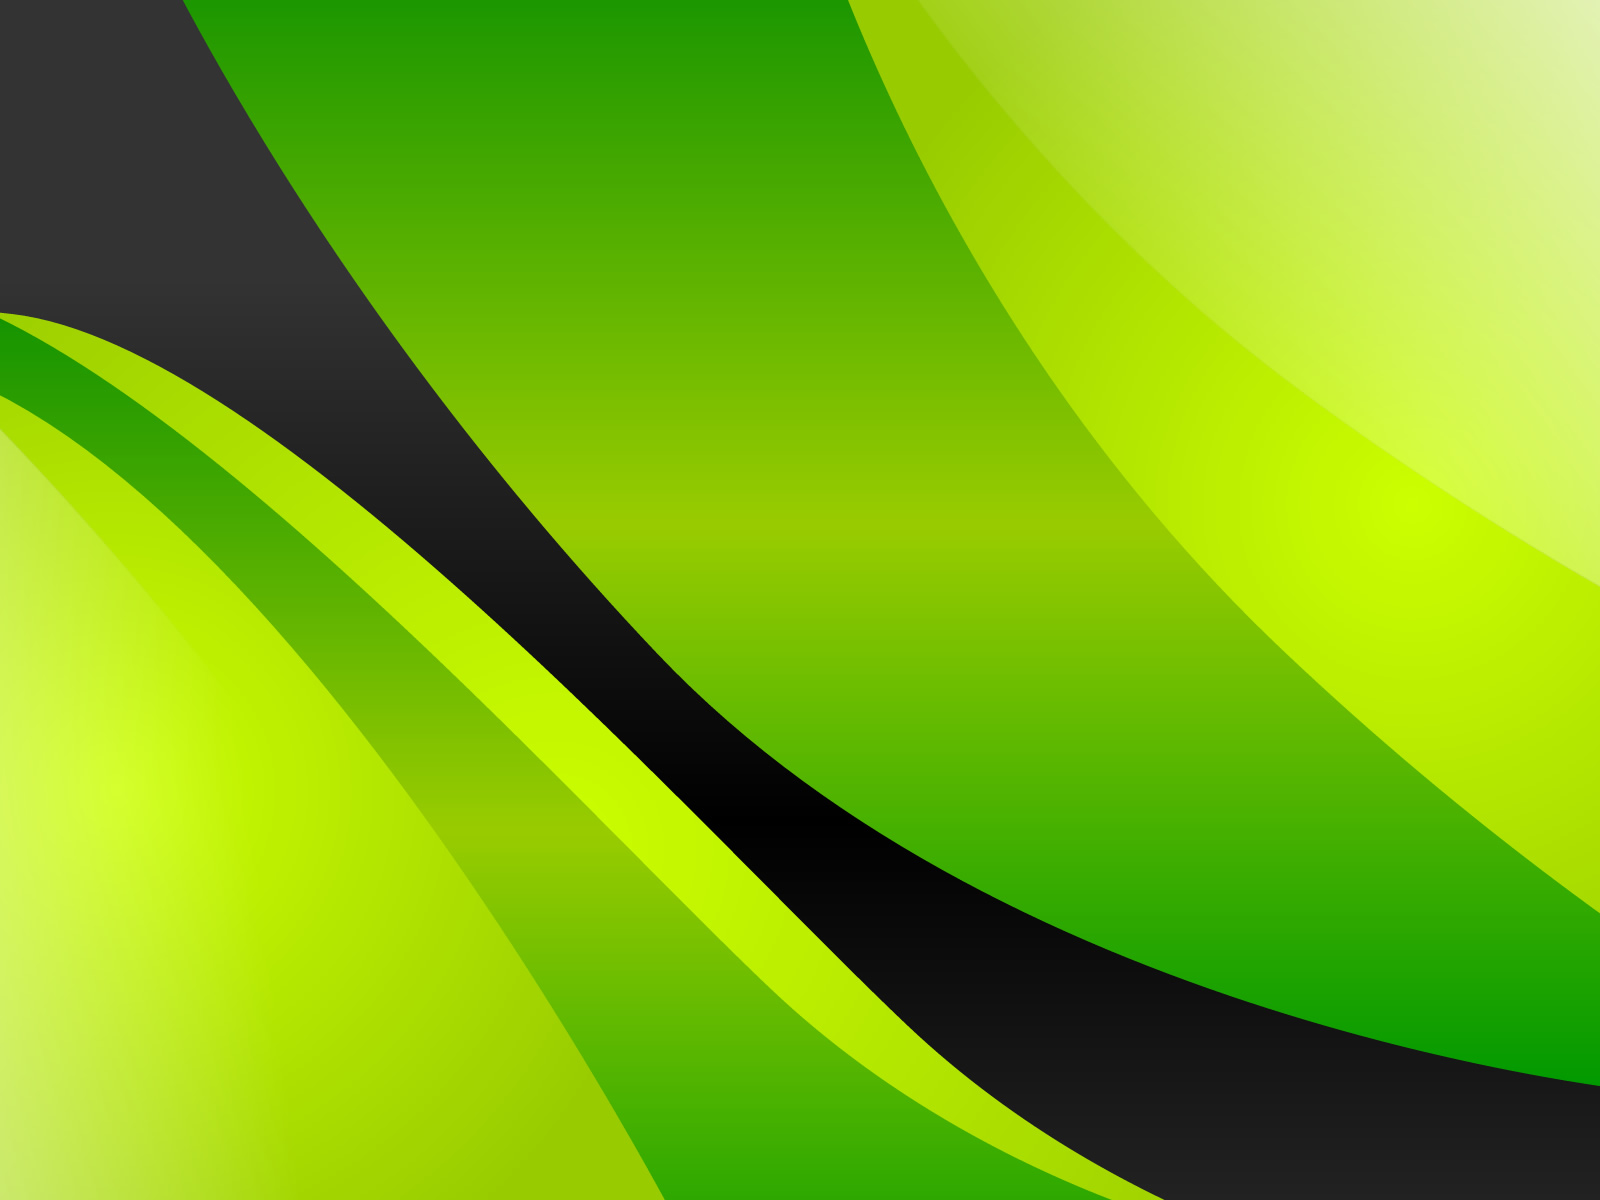 black and white wallpapers greenyellow abstract wallpaper